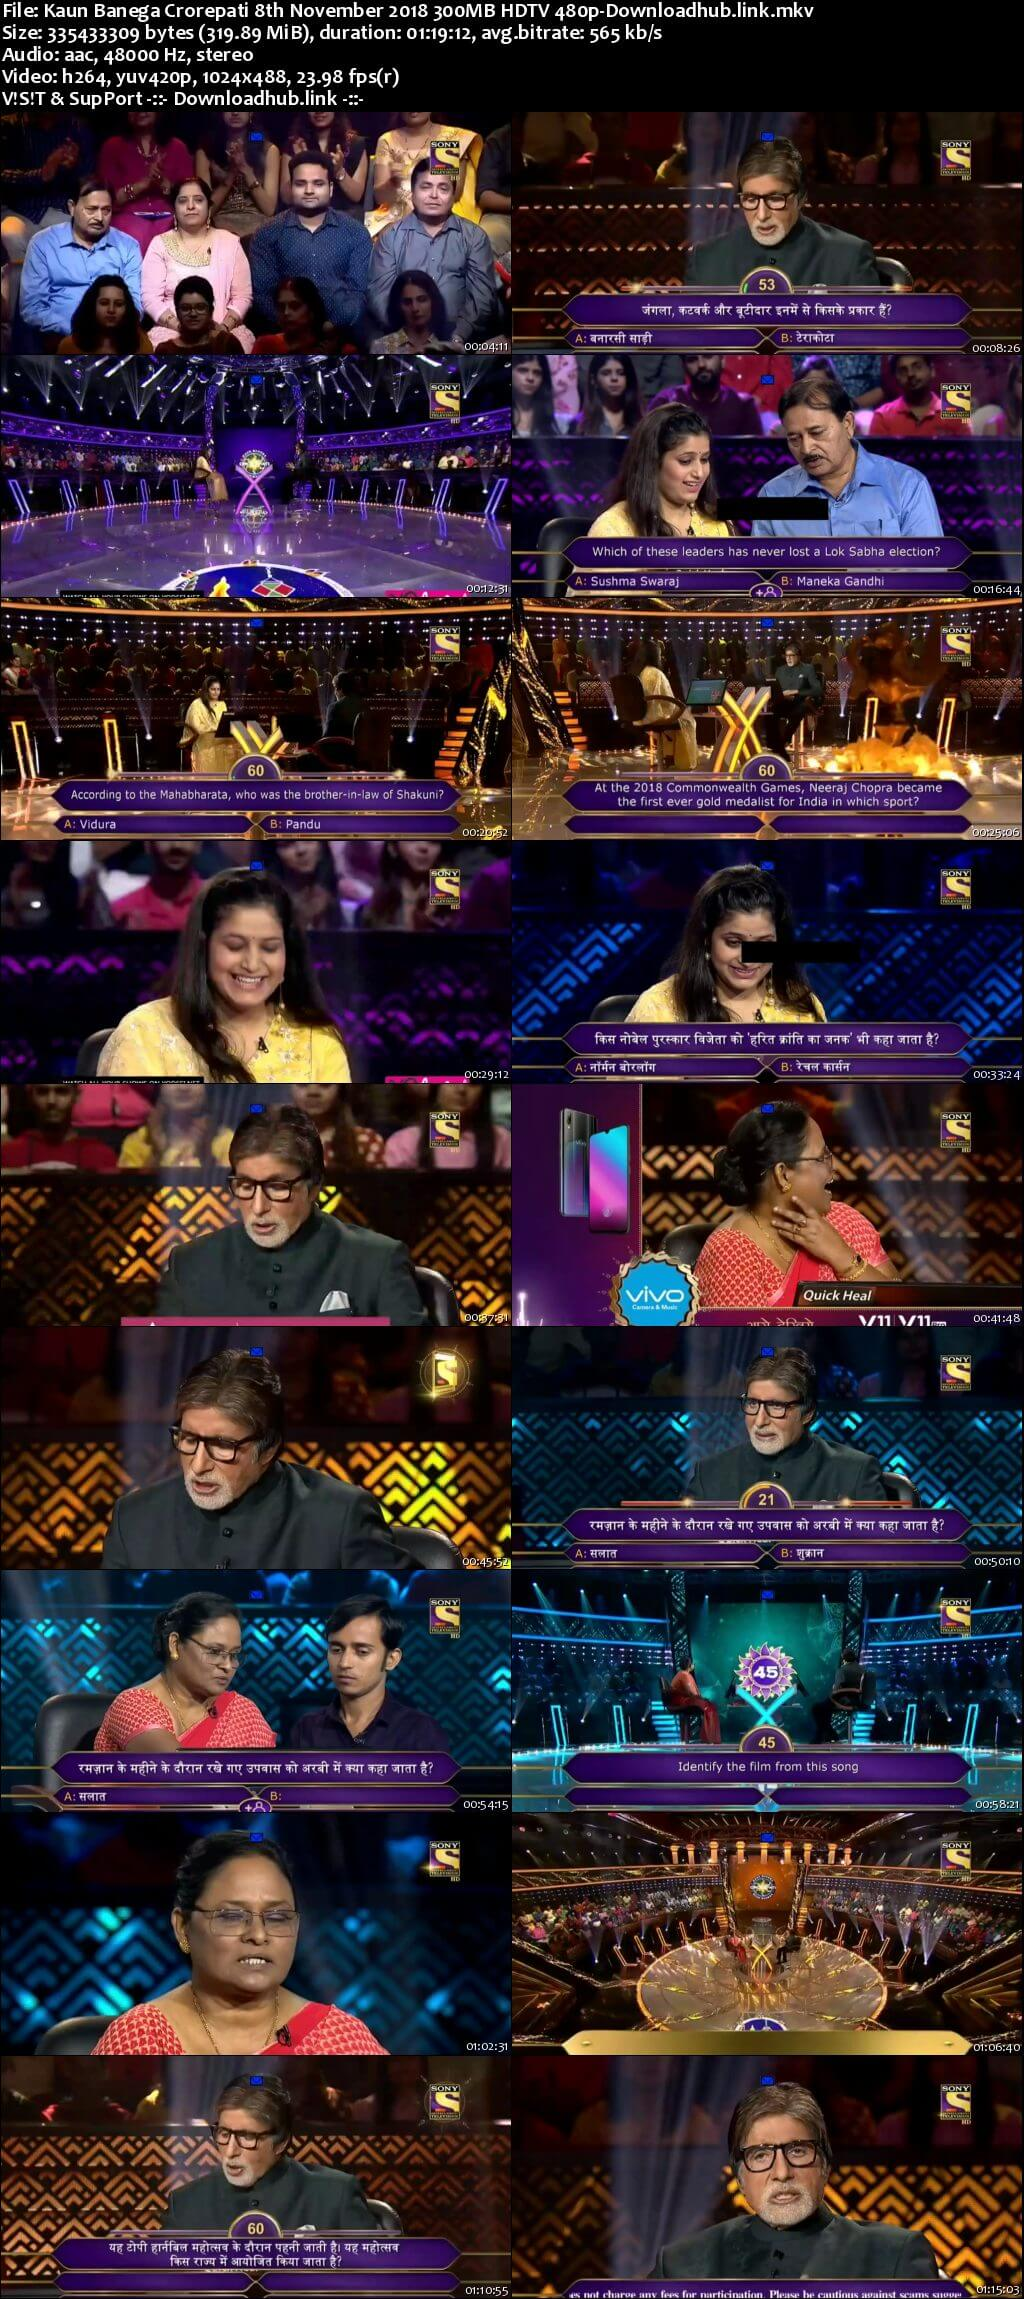 Kaun Banega Crorepati 8th November 2018 300MB HDTV 480p